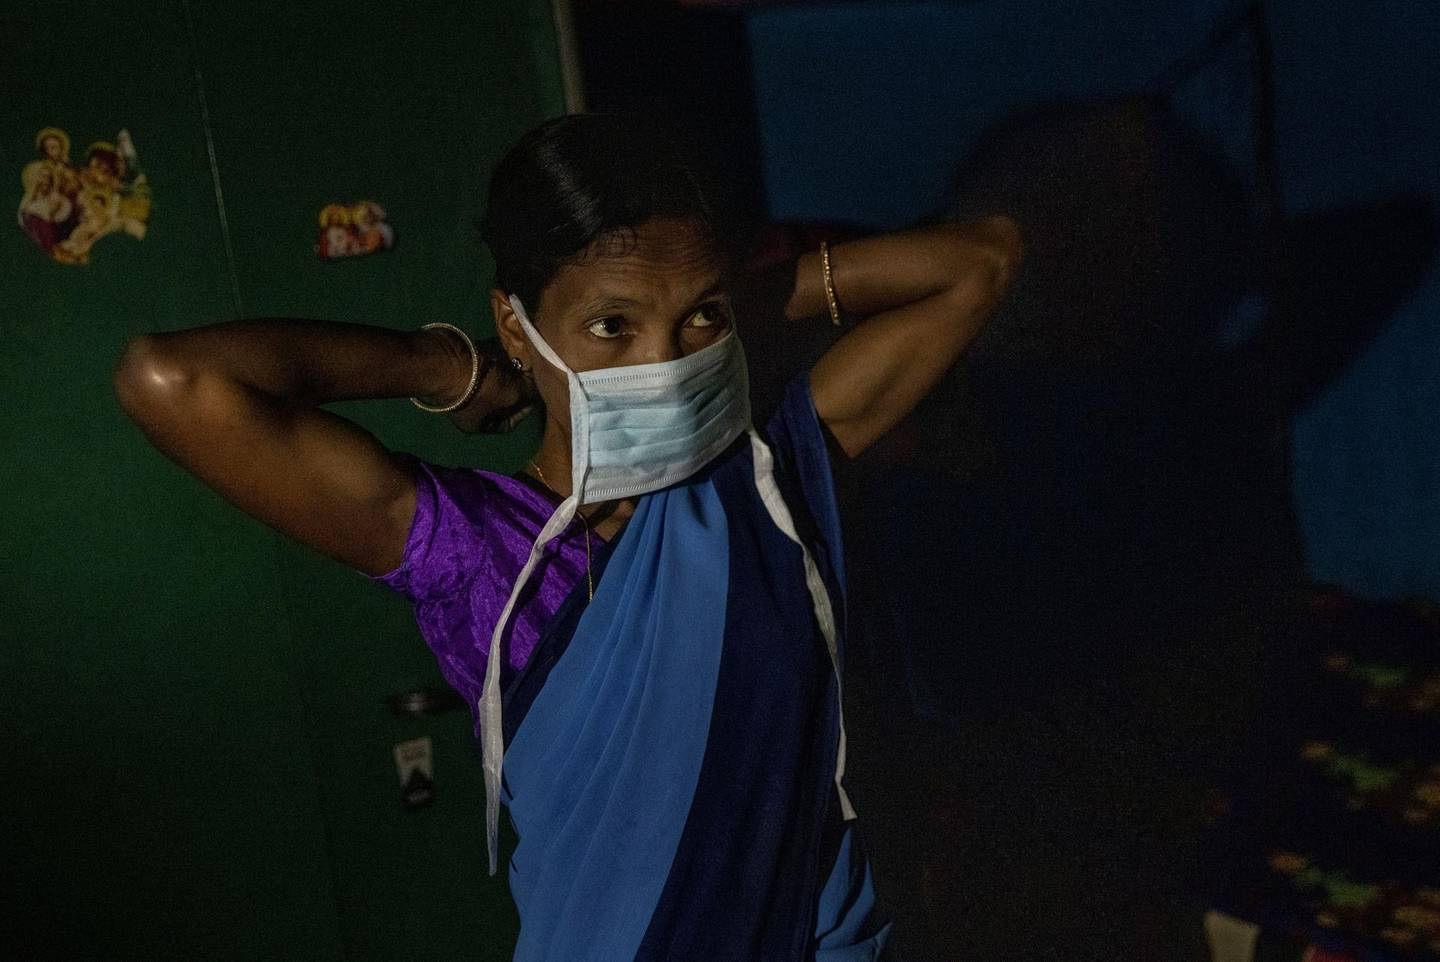 """Reena Jani, 34, a health worker, puts on a protective face mask as she gets ready to travel to Mathalput Community Health Centre to receive the vaccine developed by Oxford/AstraZeneca, during the coronavirus disease (COVID-19) pandemic, in Pendajam village in Koraput, India, January 16, 2021. Jani became an accredited social health activist (ASHA) community health worker, a lynchpin of India's rural healthcare system, around seven years ago. She helps to monitor pregnant women in her village of 500 people, and helps with malaria tests and doles out basic medication for fever and diarrhoea. The main breadwinner for her family of five, Jani draws a monthly salary of 3,000 rupees ($41), helping put her two daughters and one son through school. When she first learned she was to be vaccinated, Jani said she wasn't worried. Then she heard a rumour. """"Someone told me that people are fainting, they are developing fever and some are dying after taking the injection,"""" she said. """"That is why I was frightened."""" REUTERS/Danish Siddiqui     SEARCH """"SIDDIQUI OXFORD/ASTRAZENECA"""" FOR THIS STORY. SEARCH """"WIDER IMAGE"""" FOR ALL STORIES"""